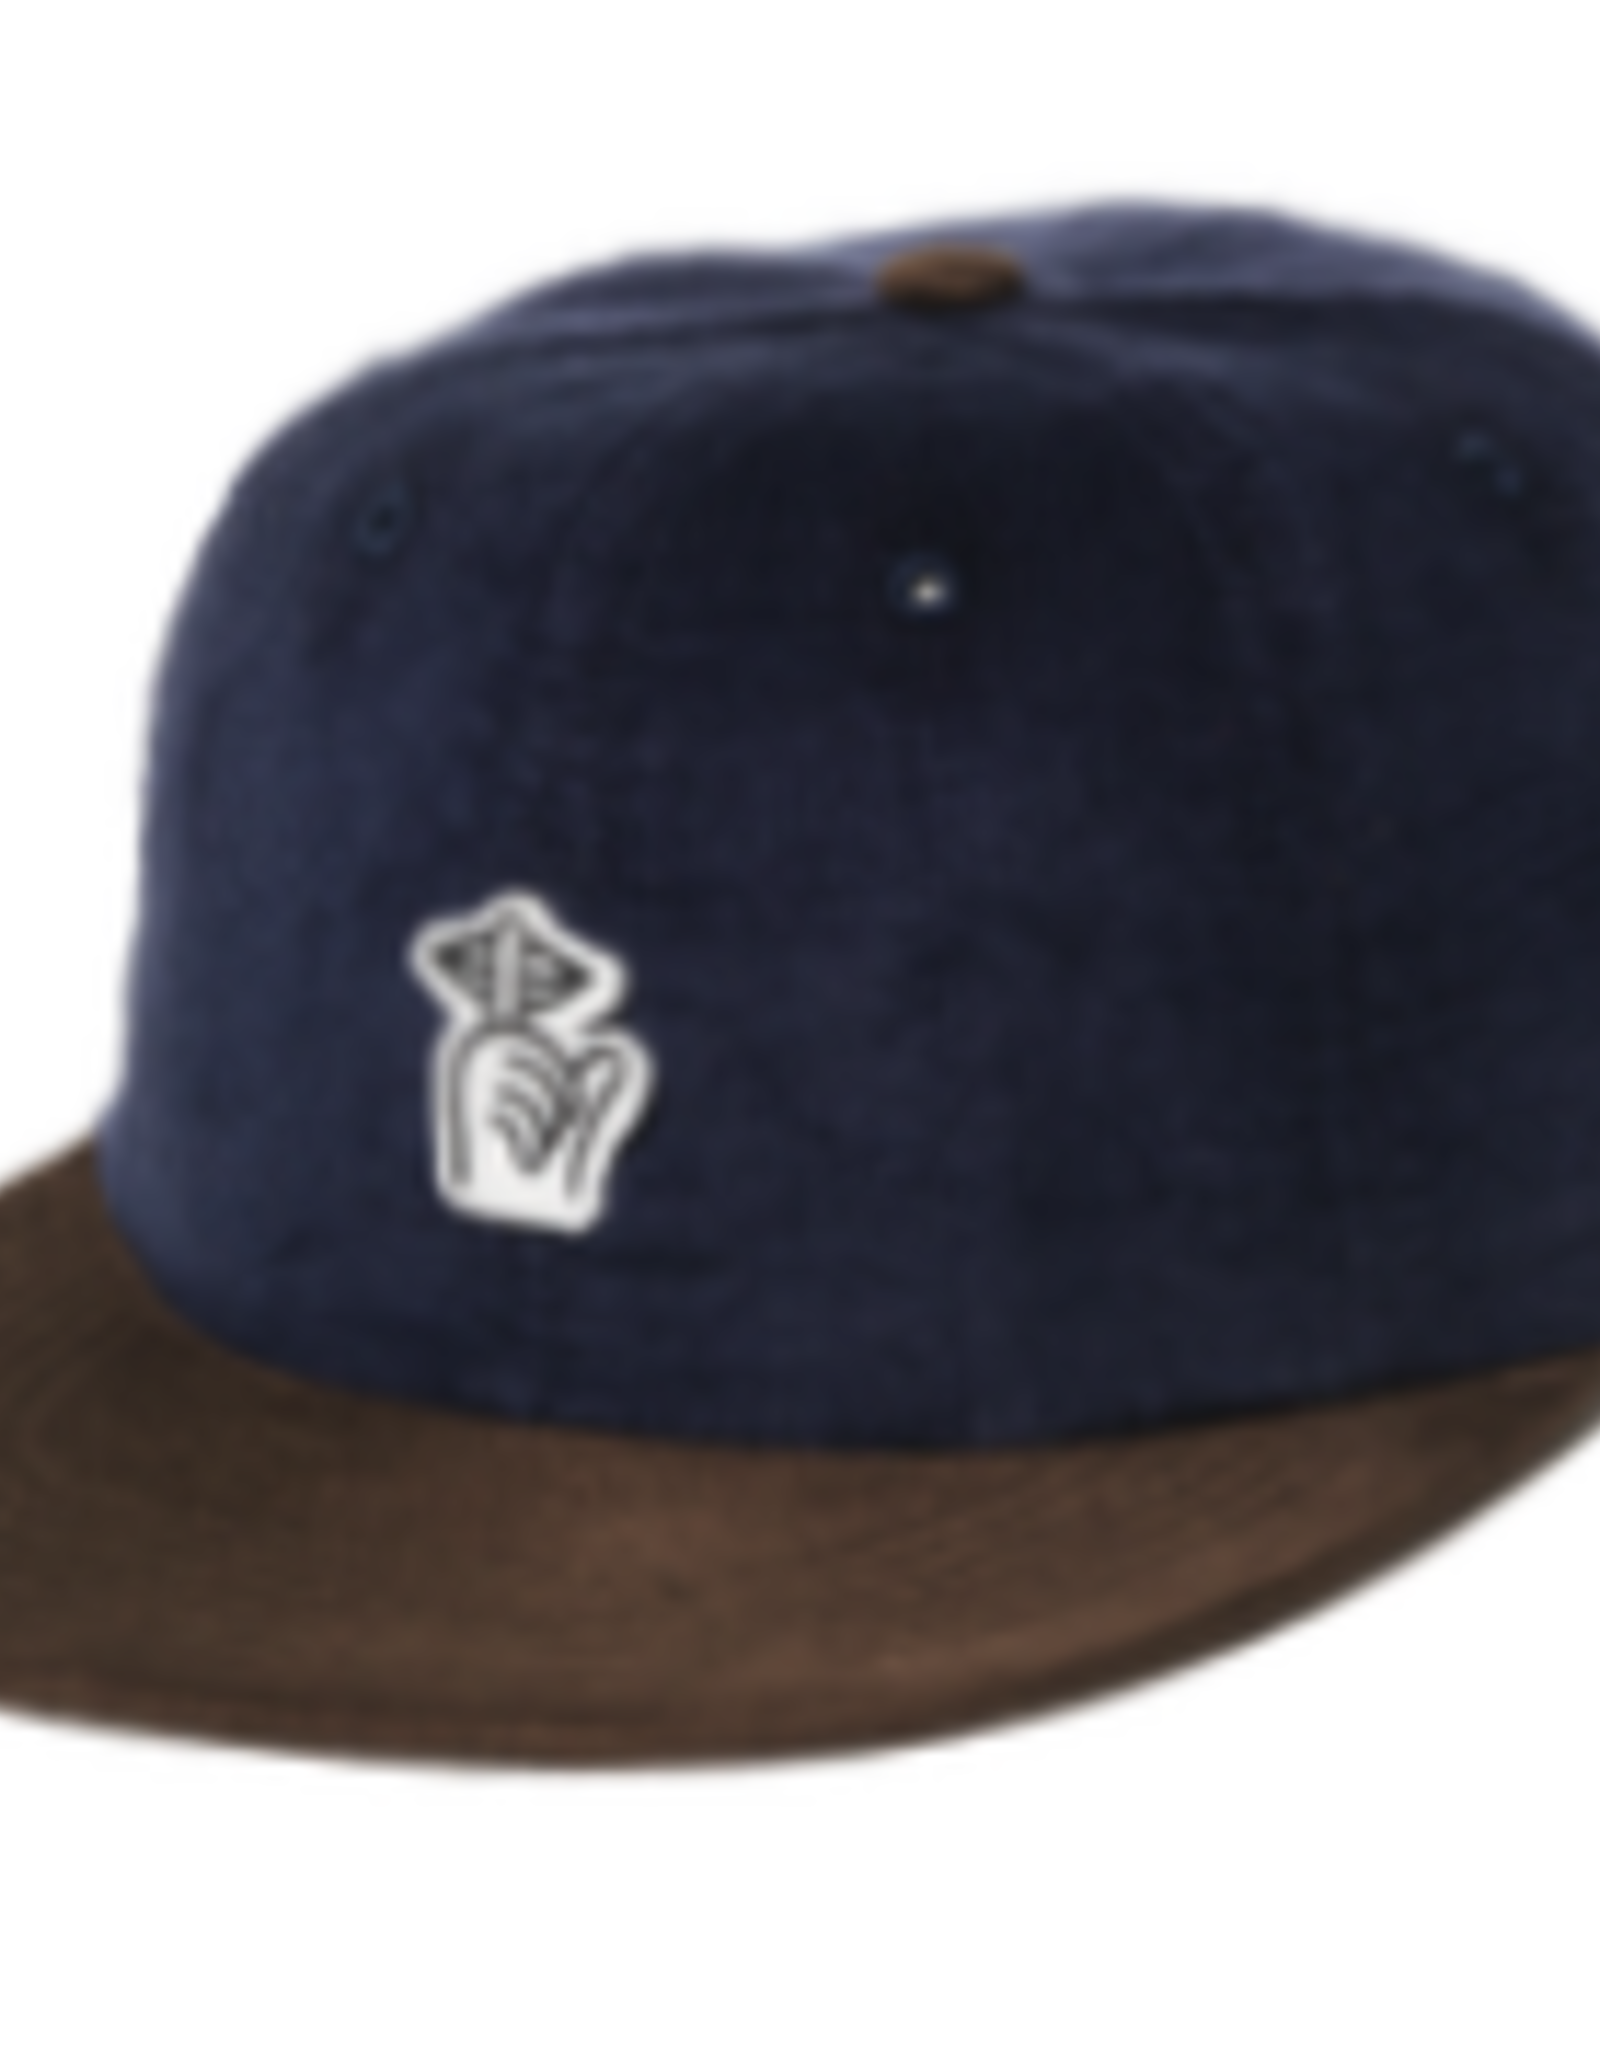 THE QUIET LIFE THE QUIET LIFE CORD FELT PATCH NAVY BROWN CAP